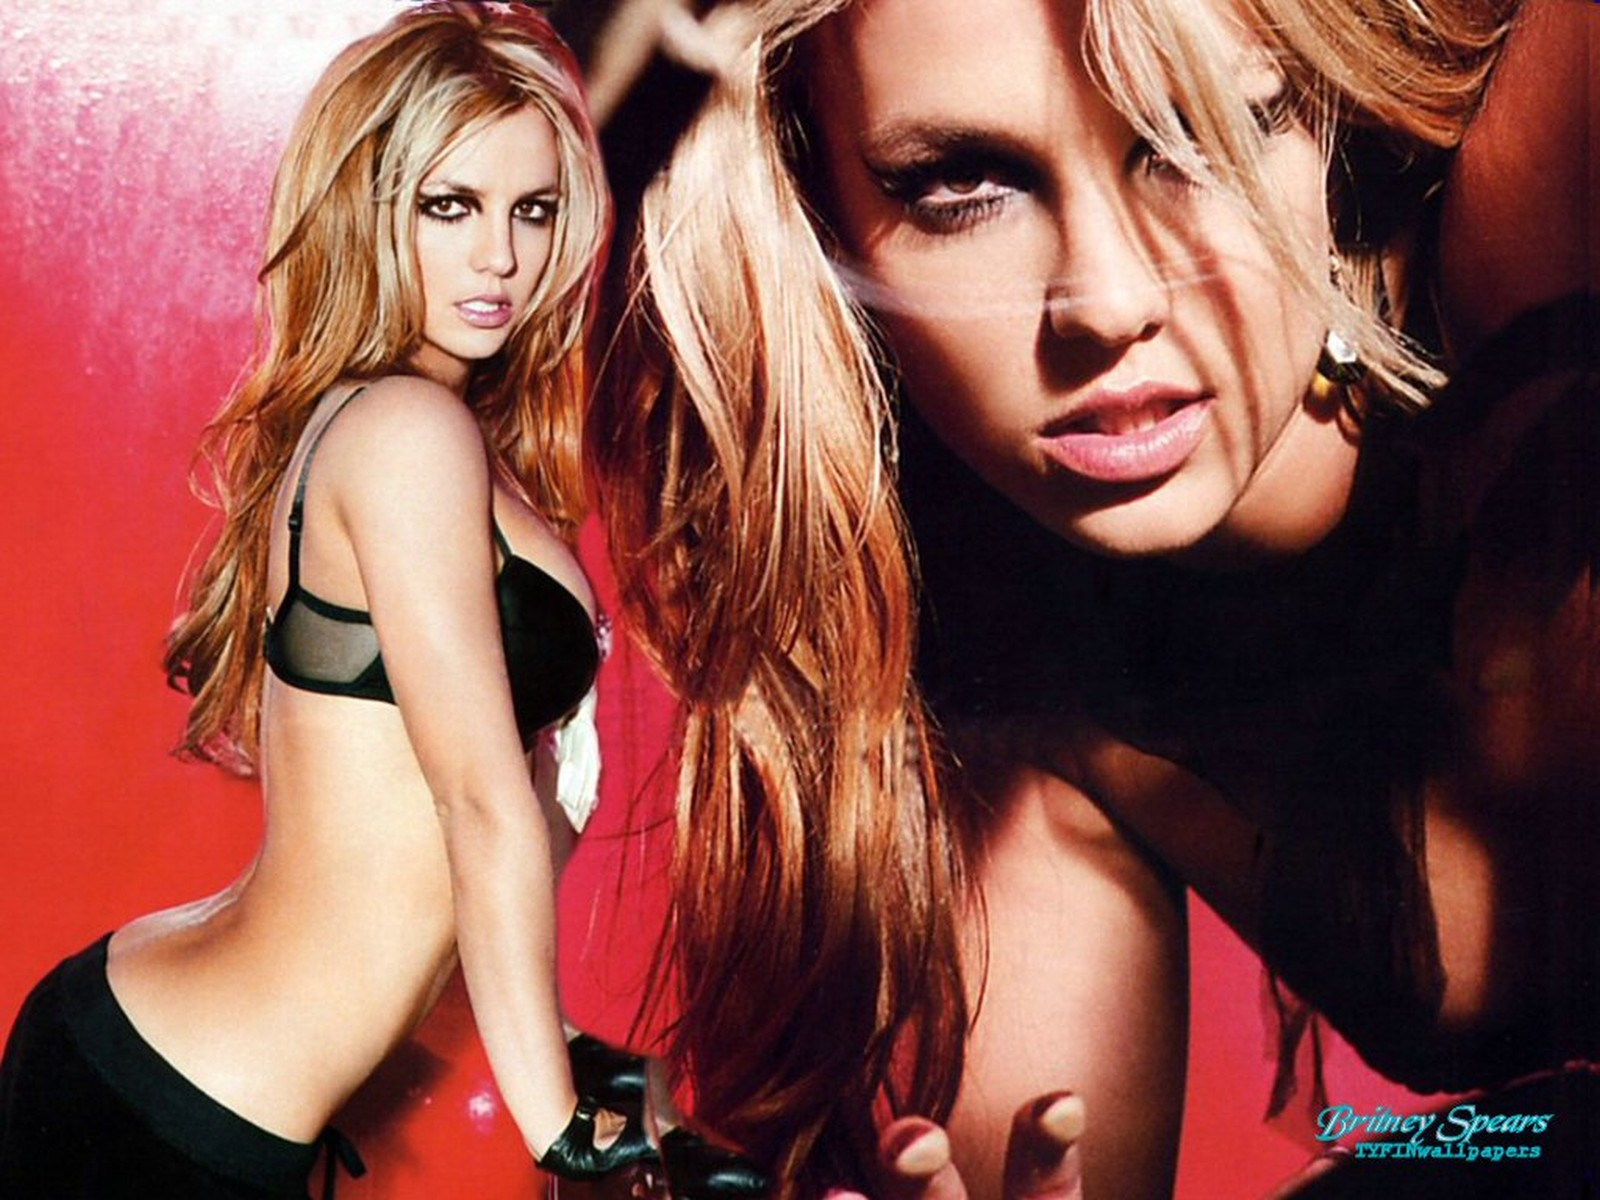 Photoshoot Britney Spears Bold Pics in Bikini Bra Sexy Hot images in Seducing Poses Showing Boobs